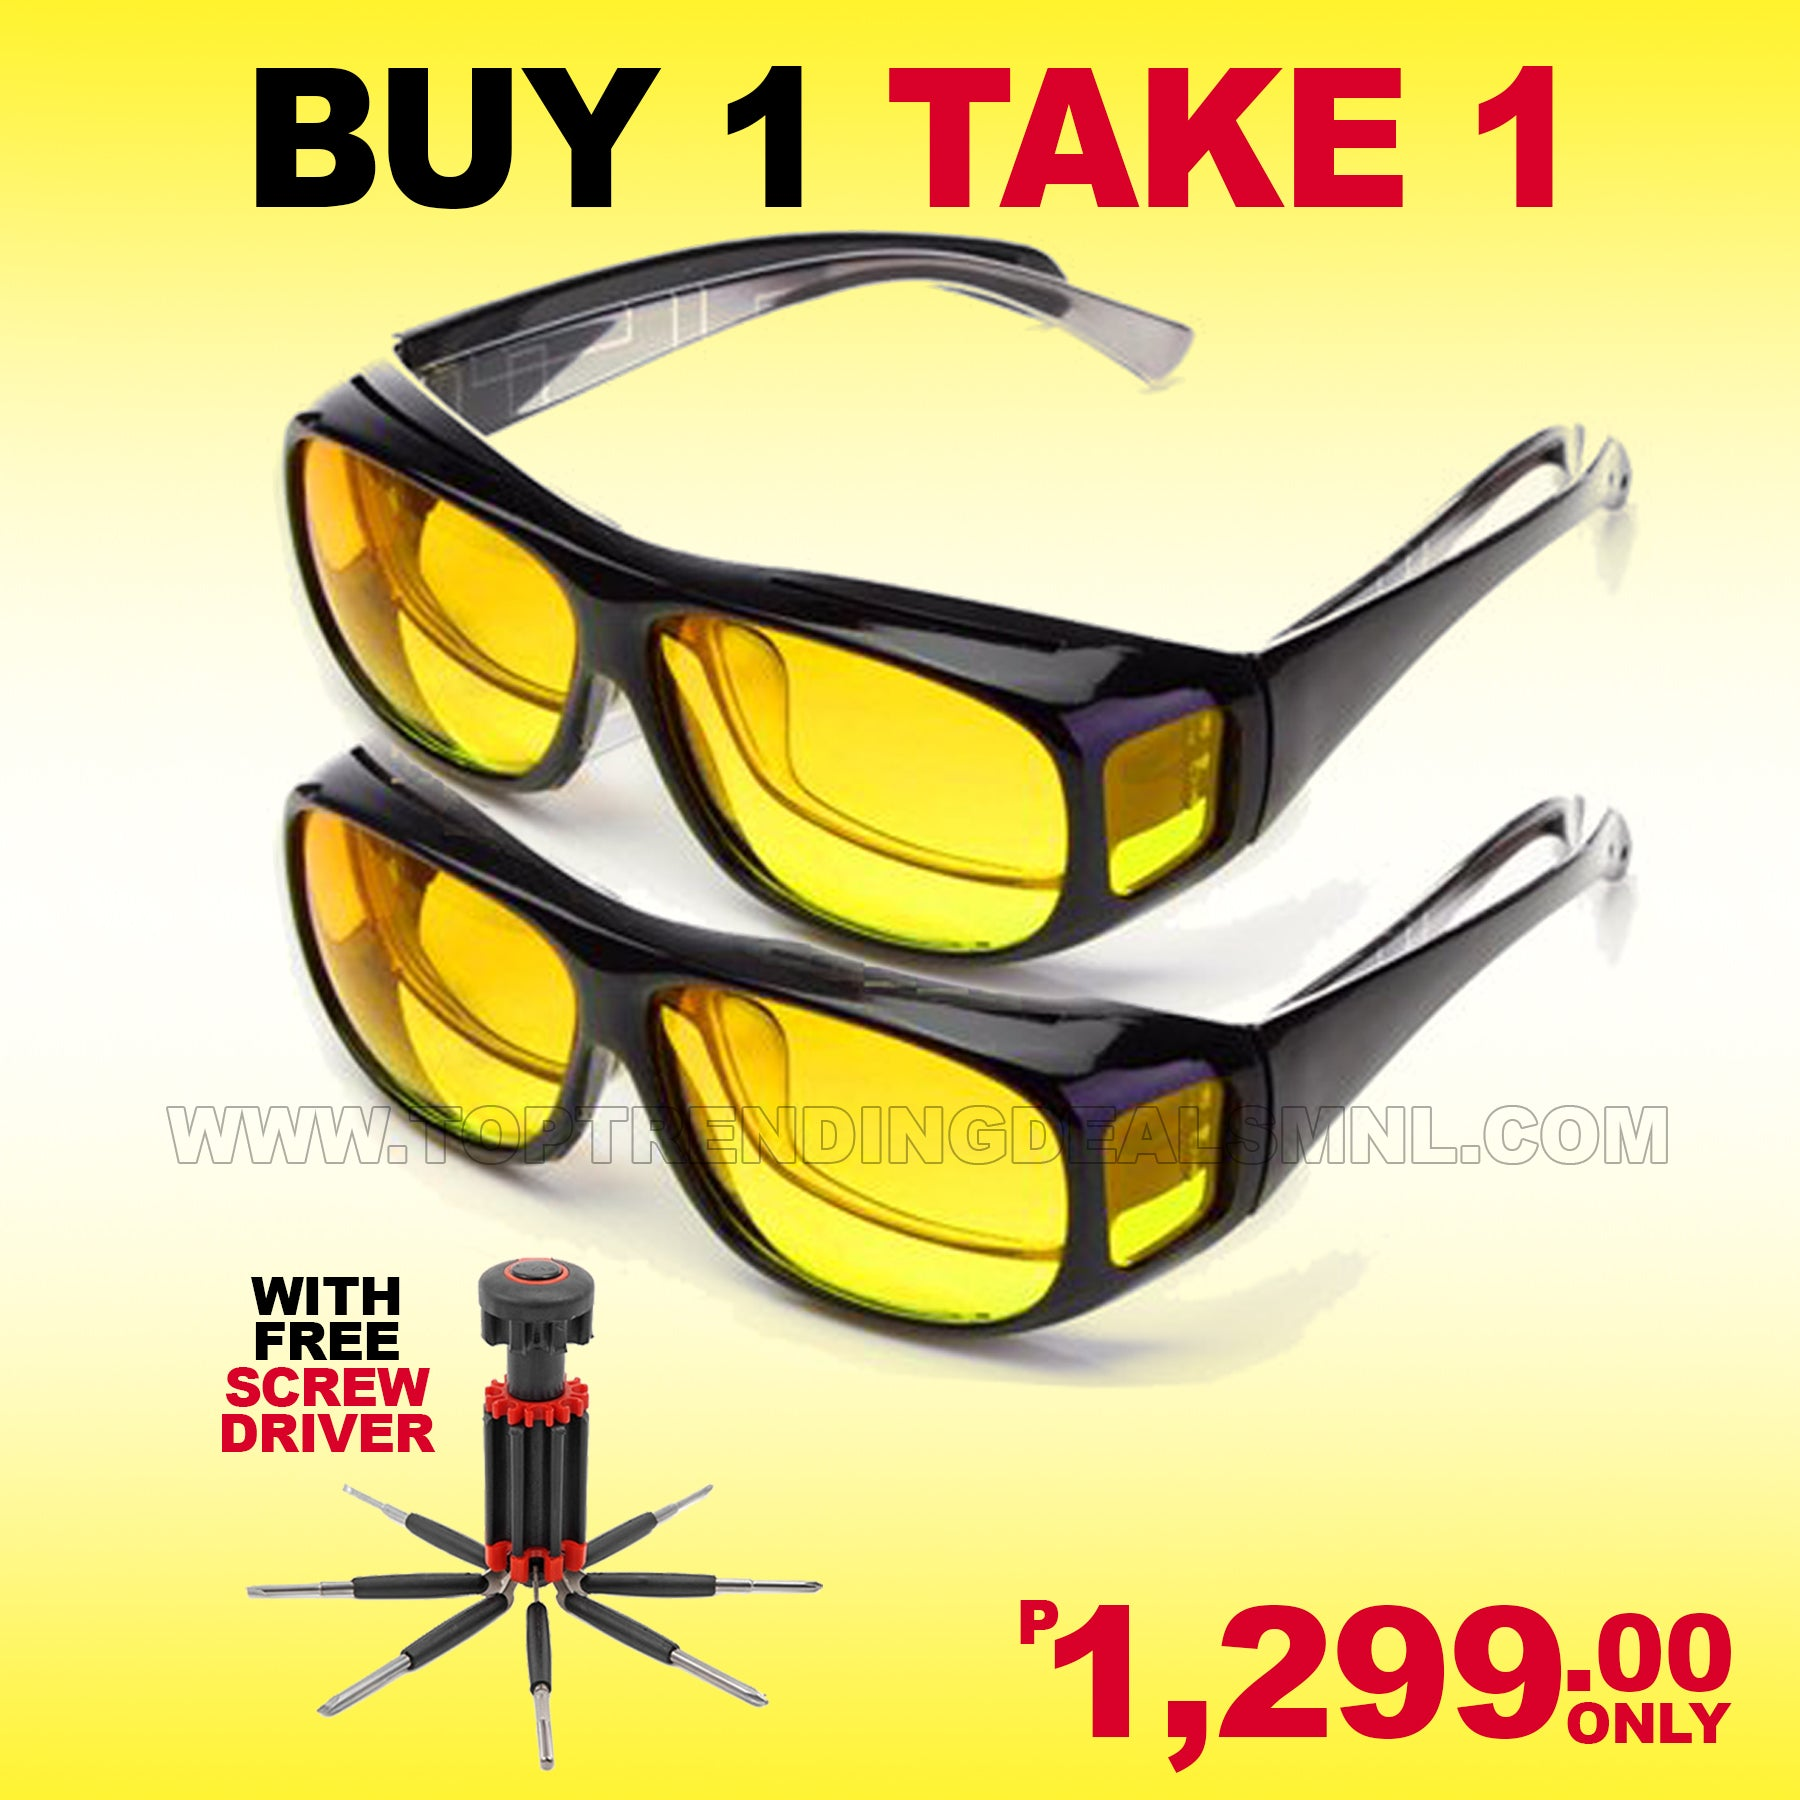 d343defab2e Night Vision Glasses (Buy 1 Take 1) w  FREE Screwdriver and ...